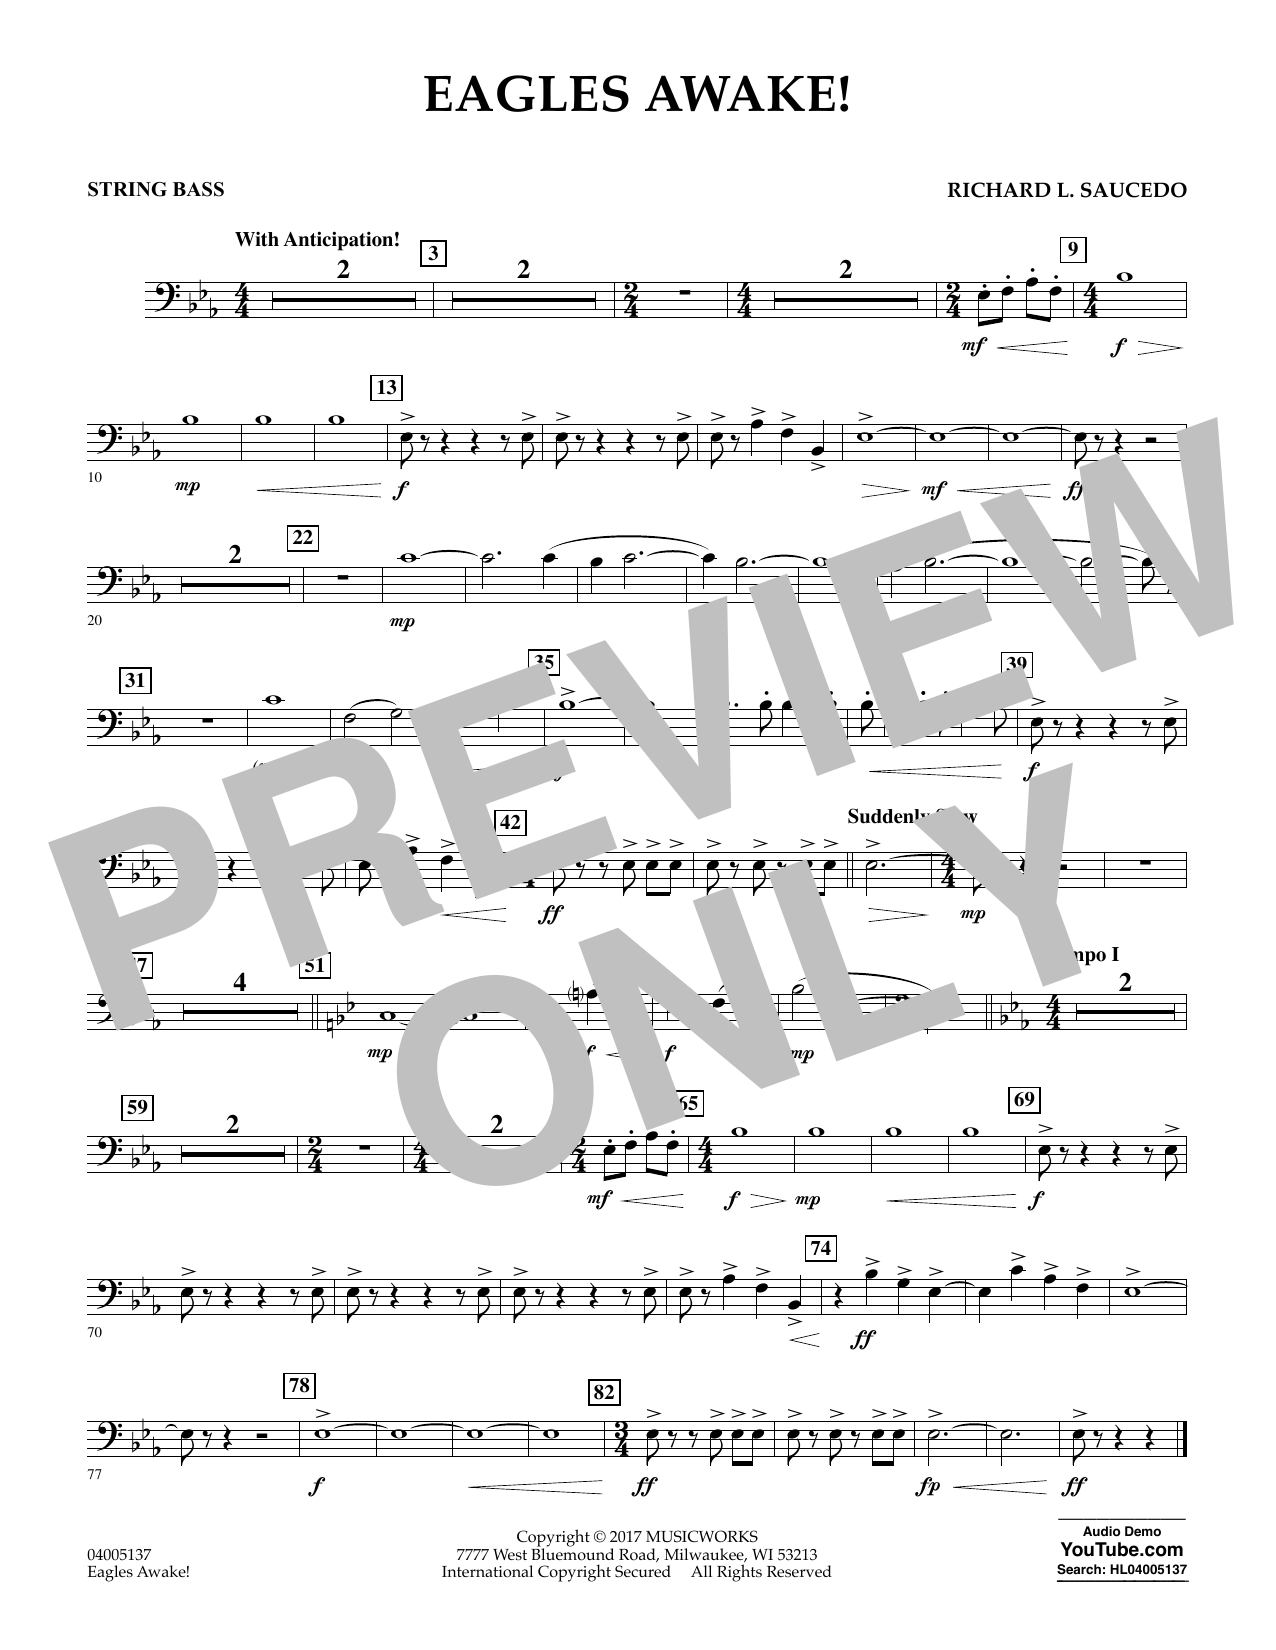 Eagles Awake! - String Bass Sheet Music